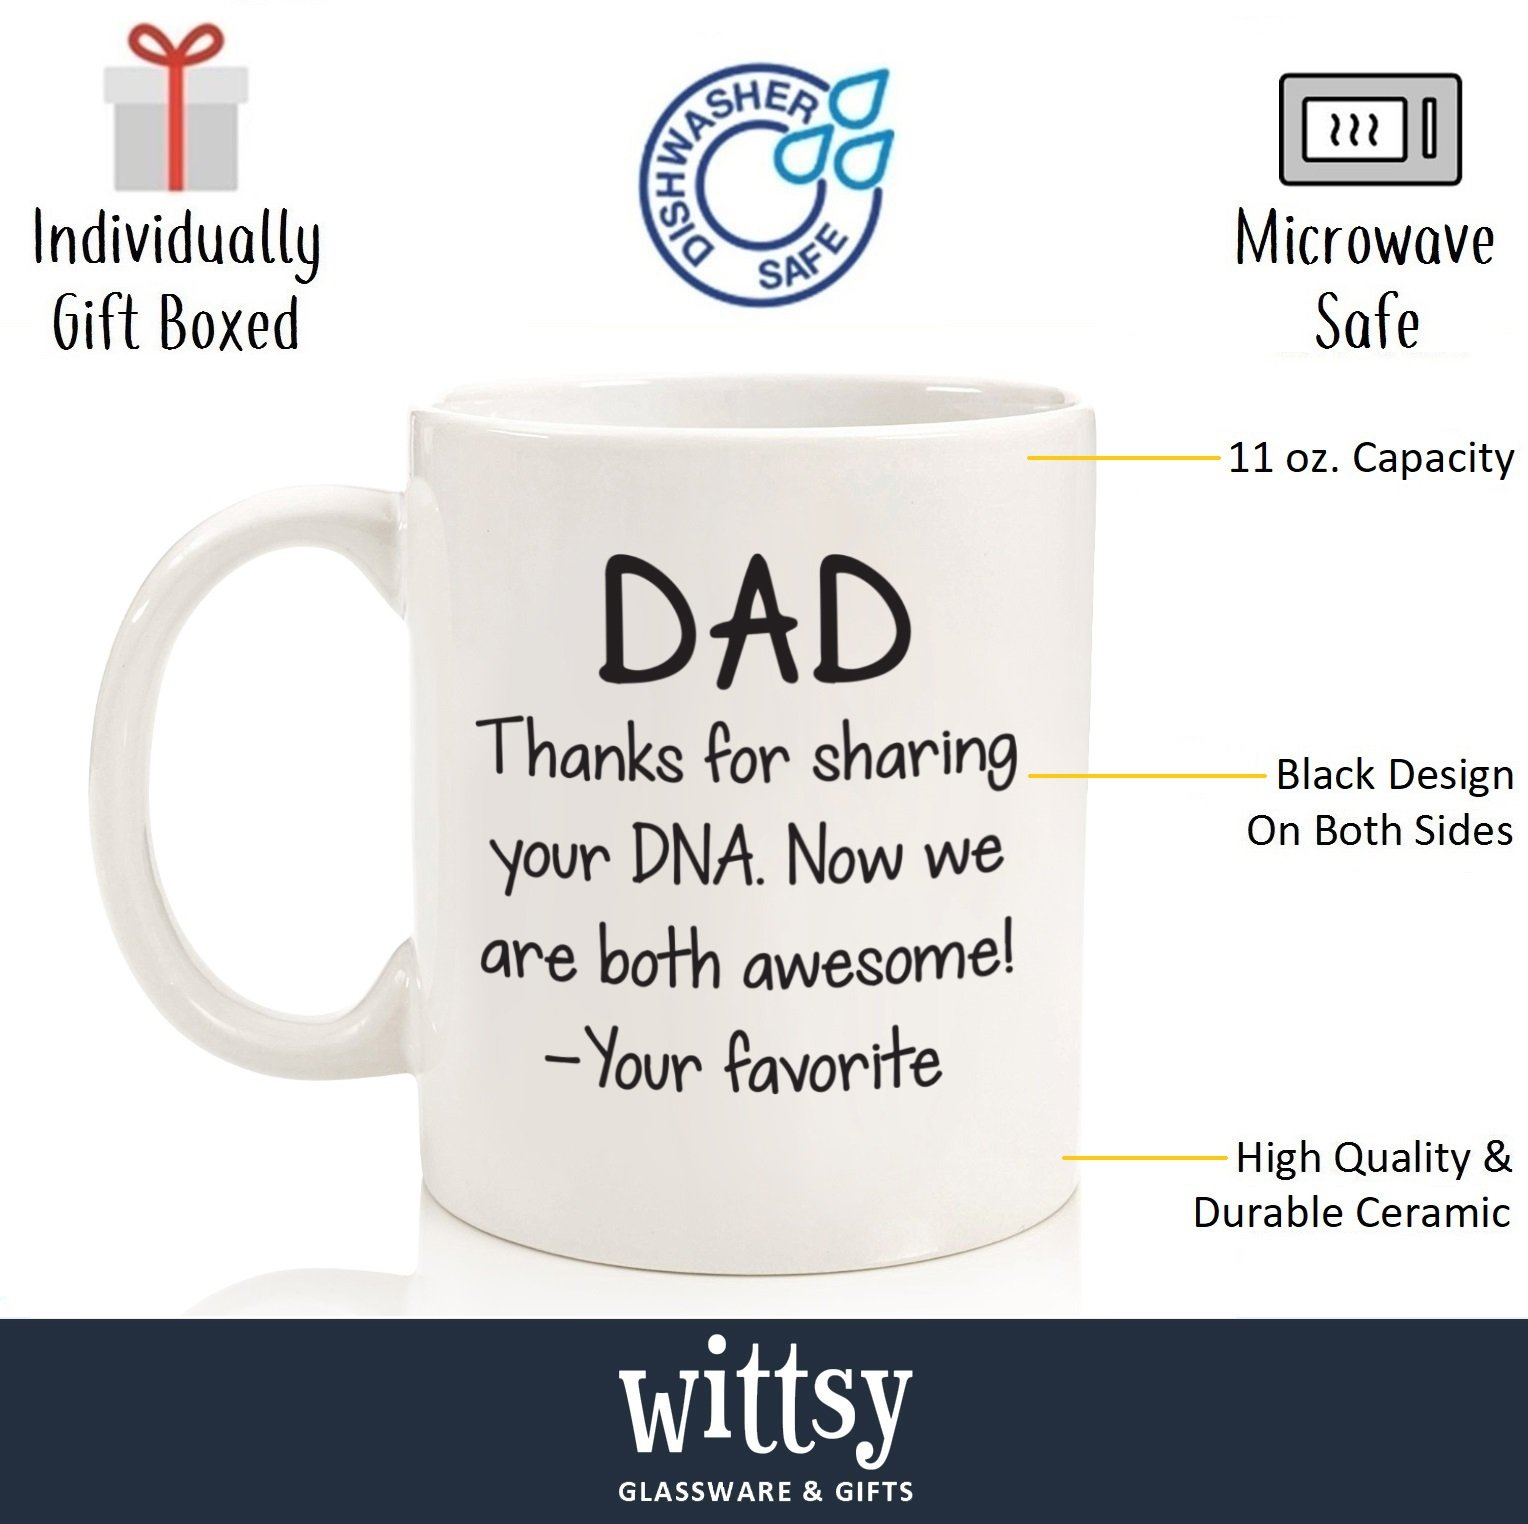 Dad Gifts - Funny Mug - Thanks For Sharing Your DNA - Best Dad Fathers Day Gifts - Unique Gag Gift For Him From Daughter, Son - Cool Birthday Present Idea For Men, Guys - Fun Novelty Coffee Cup - 11oz by Wittsy Glassware and Gifts (Image #2)